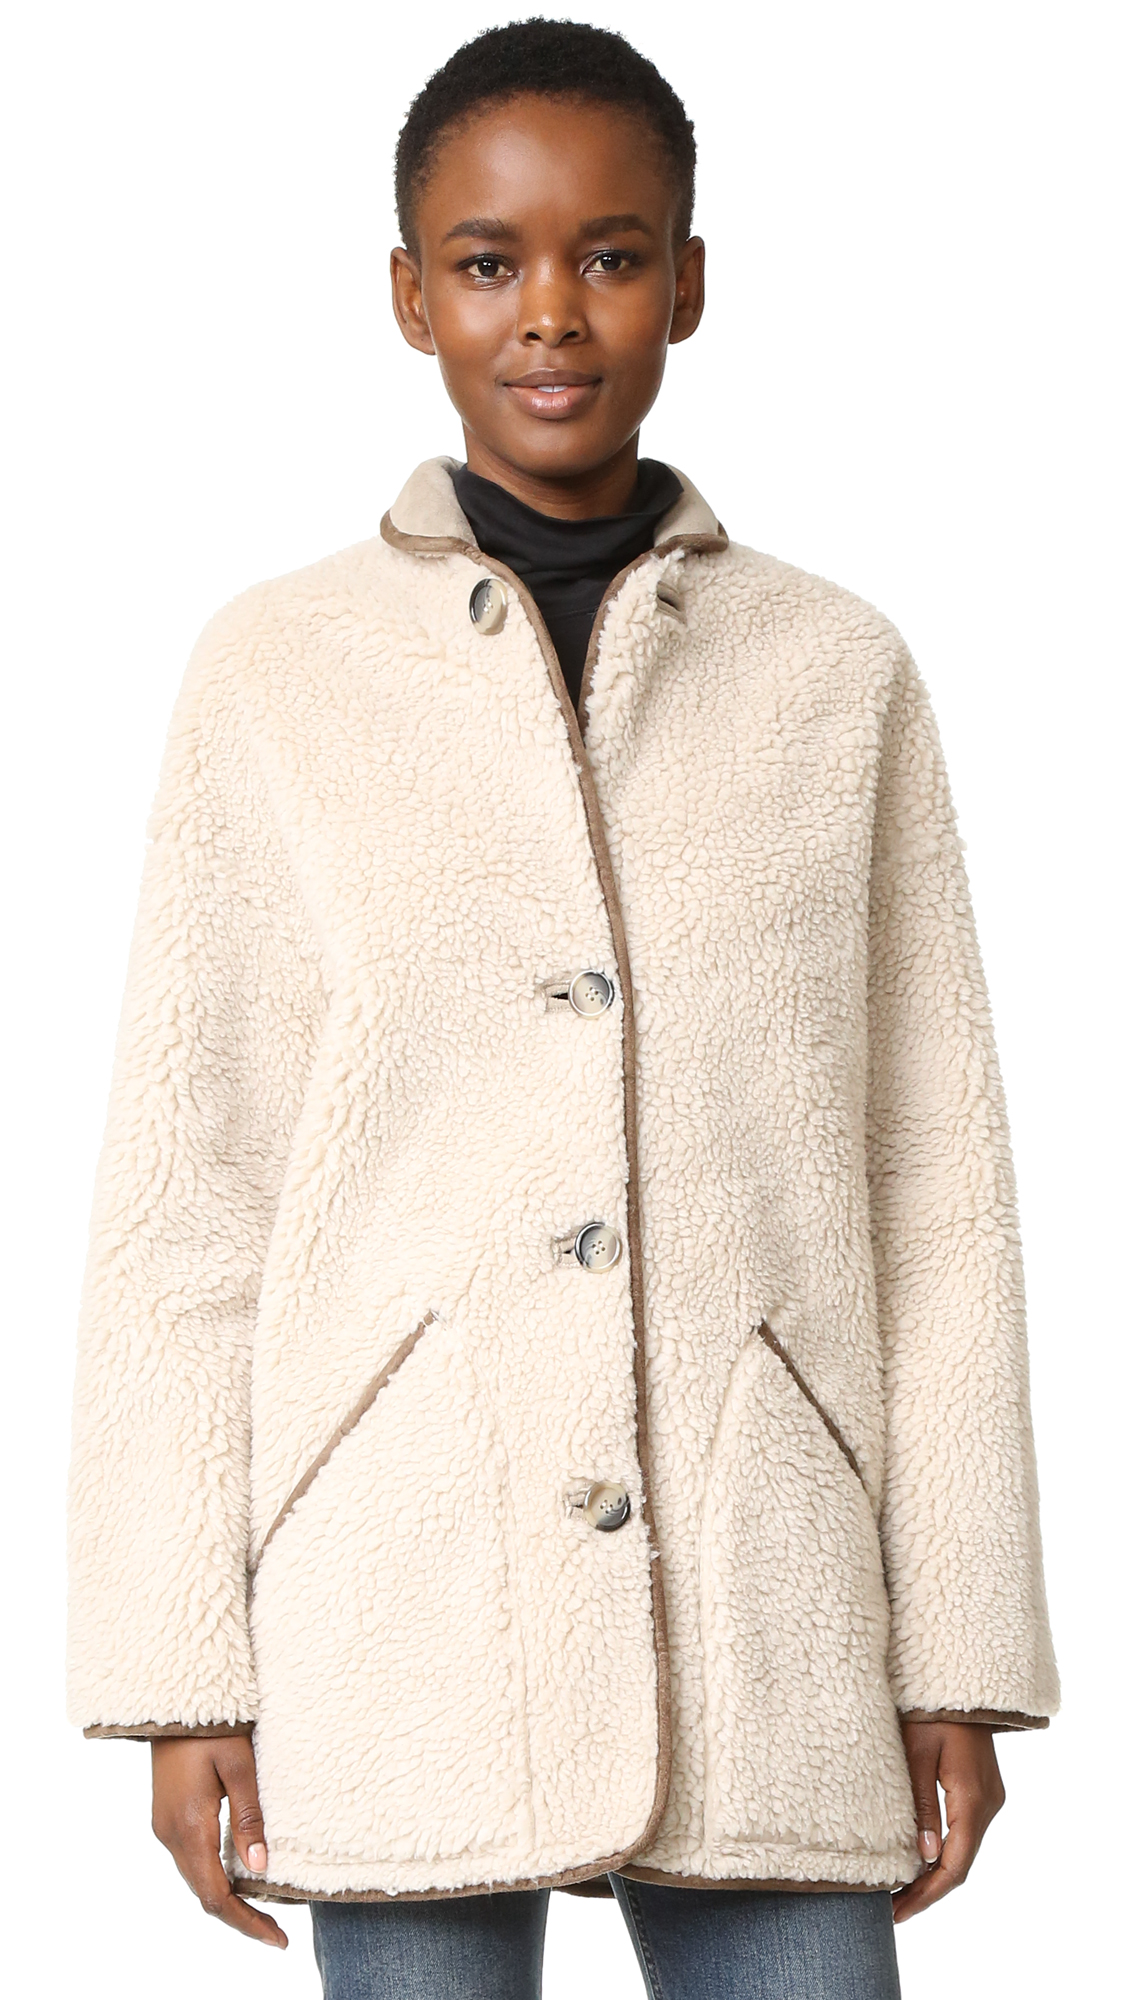 A reversible Paul Smith coat in luxe faux shearling and faux suede. Fold over collar and button placket. Slant hip pockets. Long sleeves. Fabric: Faux shearling / faux suede. 100% polyester. Dry clean. Imported, China. Measurements Length: 31.5in / 80